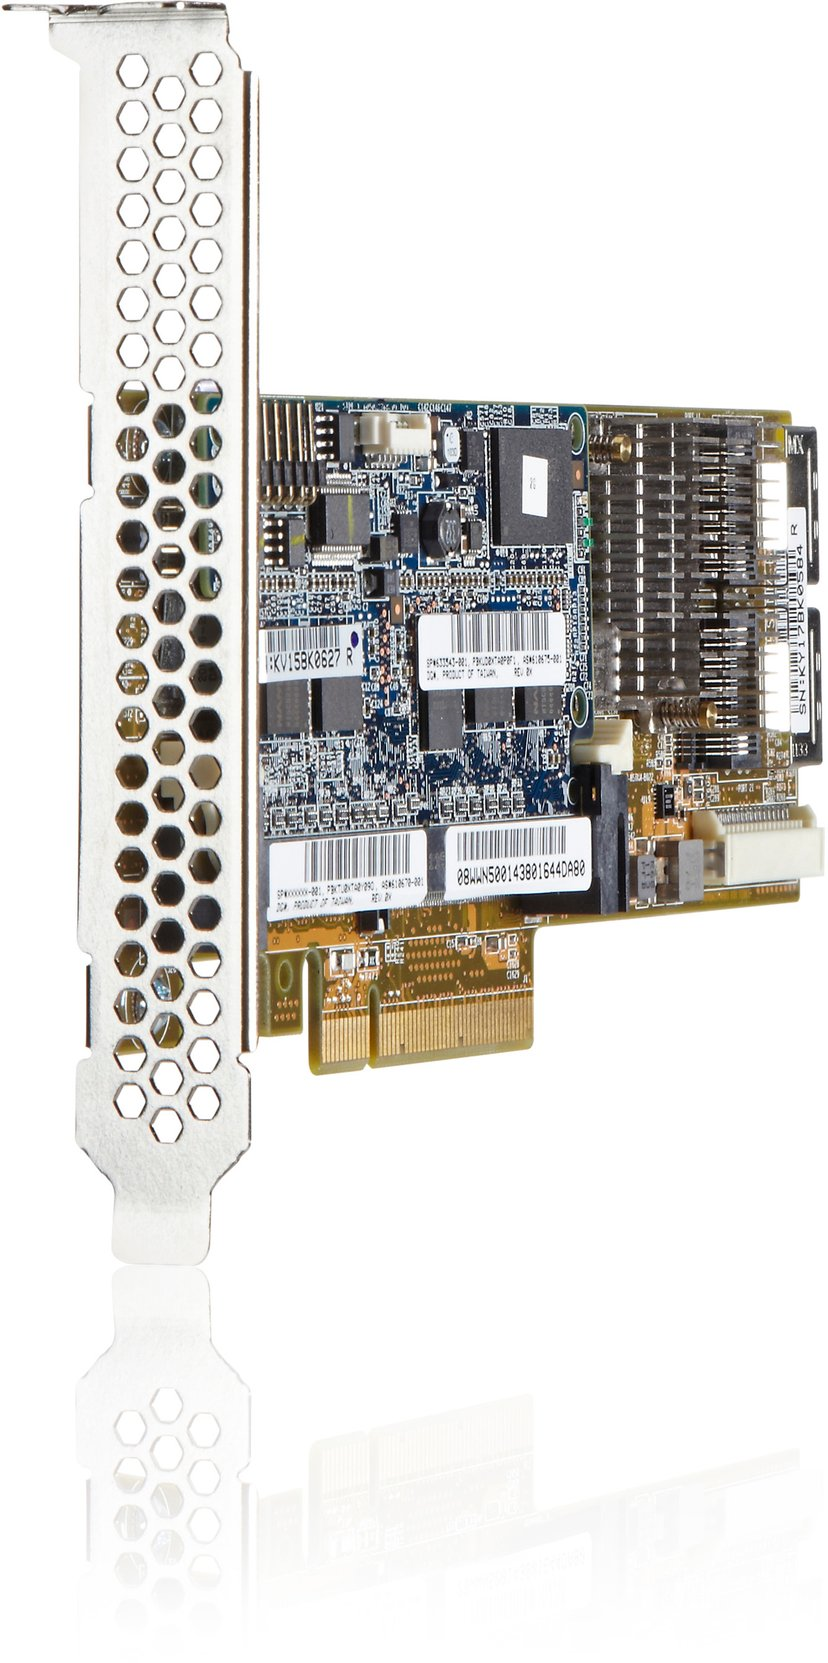 HPE Smart Array P420/1GB FBWC PCIe 3.0 x8, PCI Express 3.0 x8